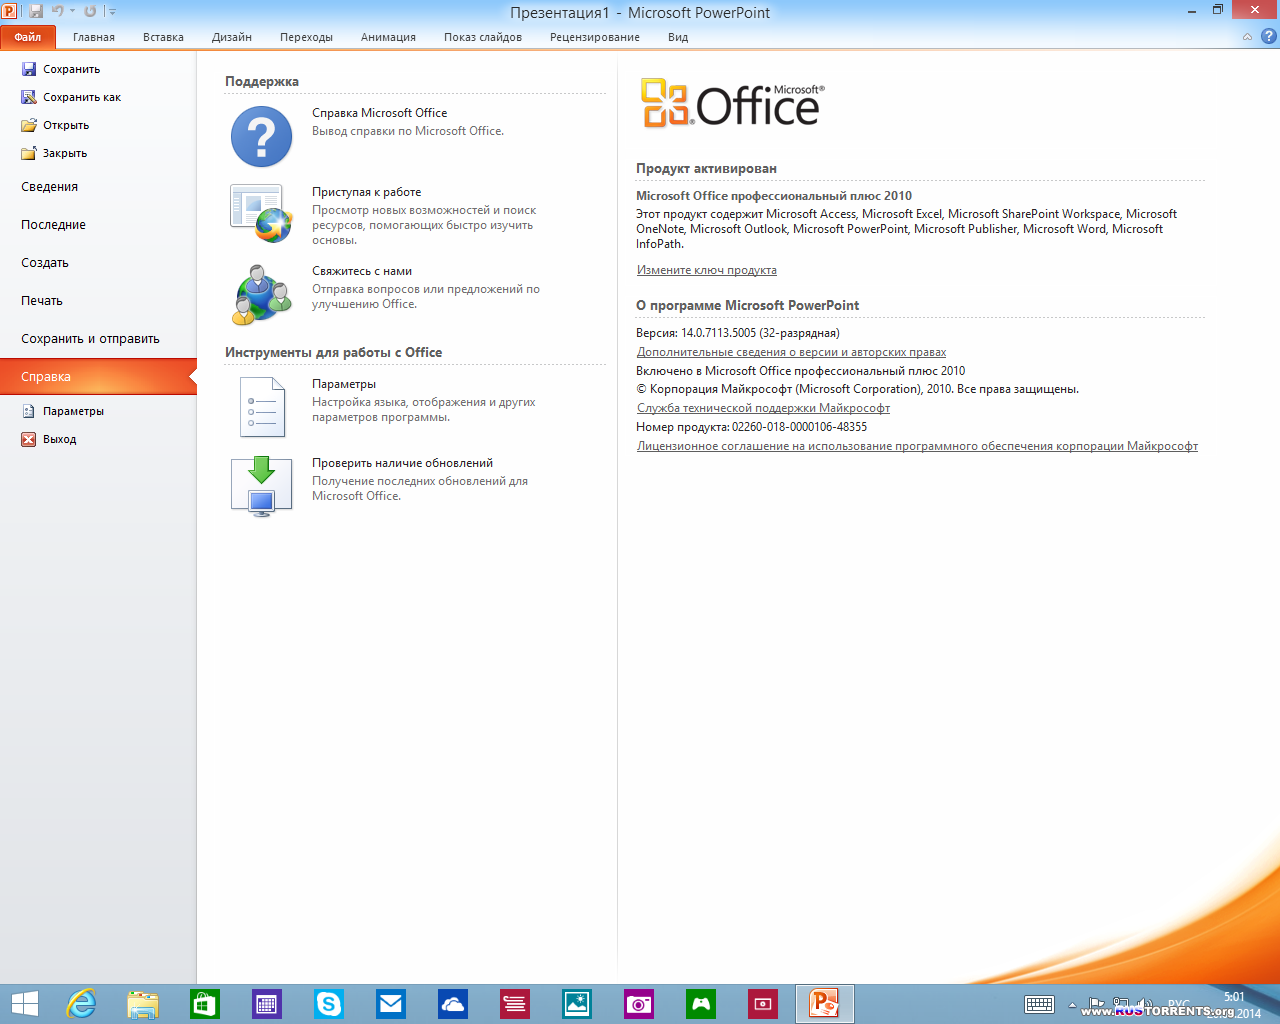 Microsoft Office 2010 Professional Plus 14.0.7113.5005 SP2 RePack by D!akov